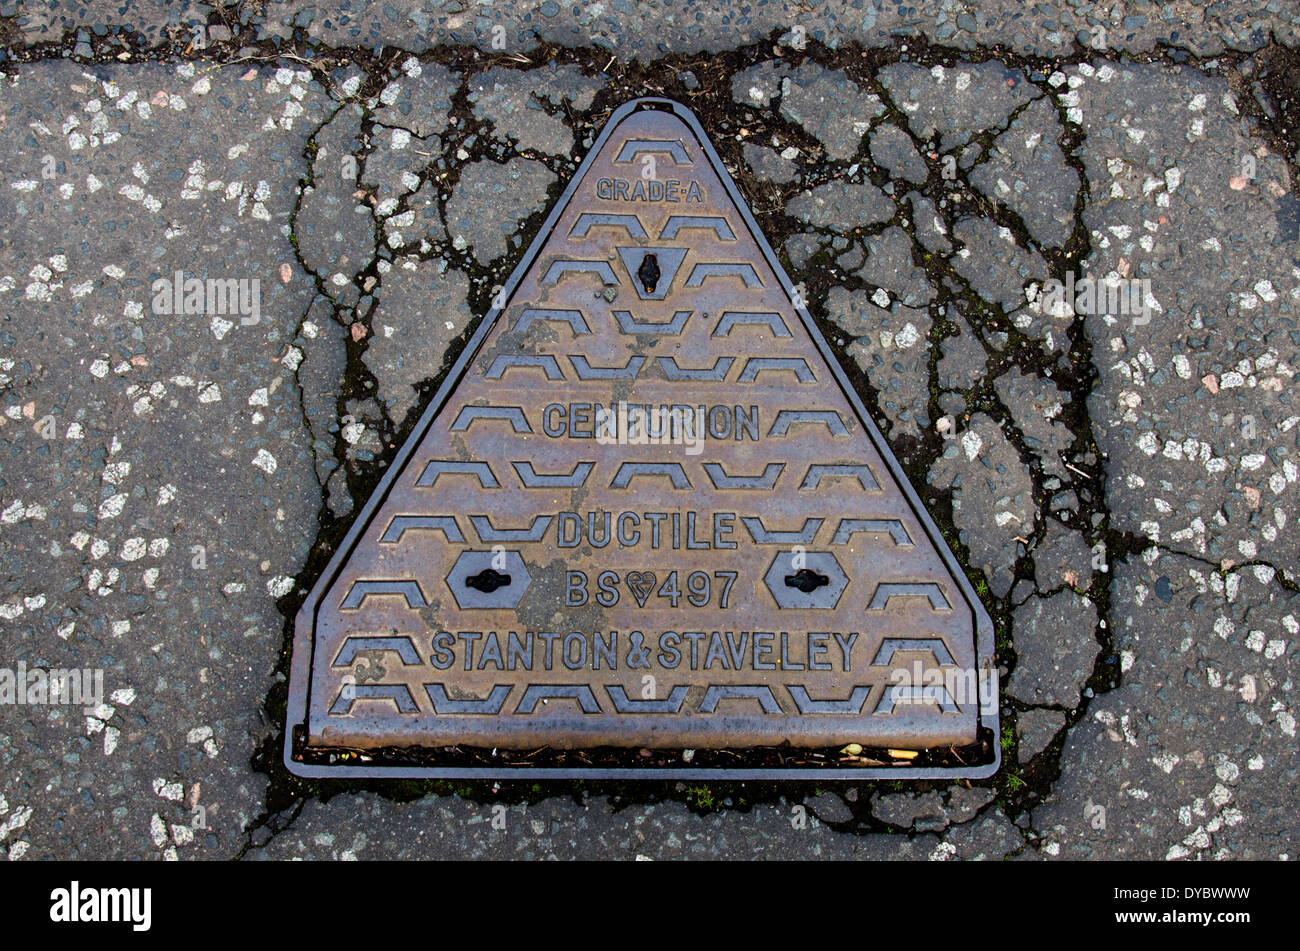 An example of a Centurion Ductile manhole cover made by Stanton and Staveley ironworks. - Stock Image